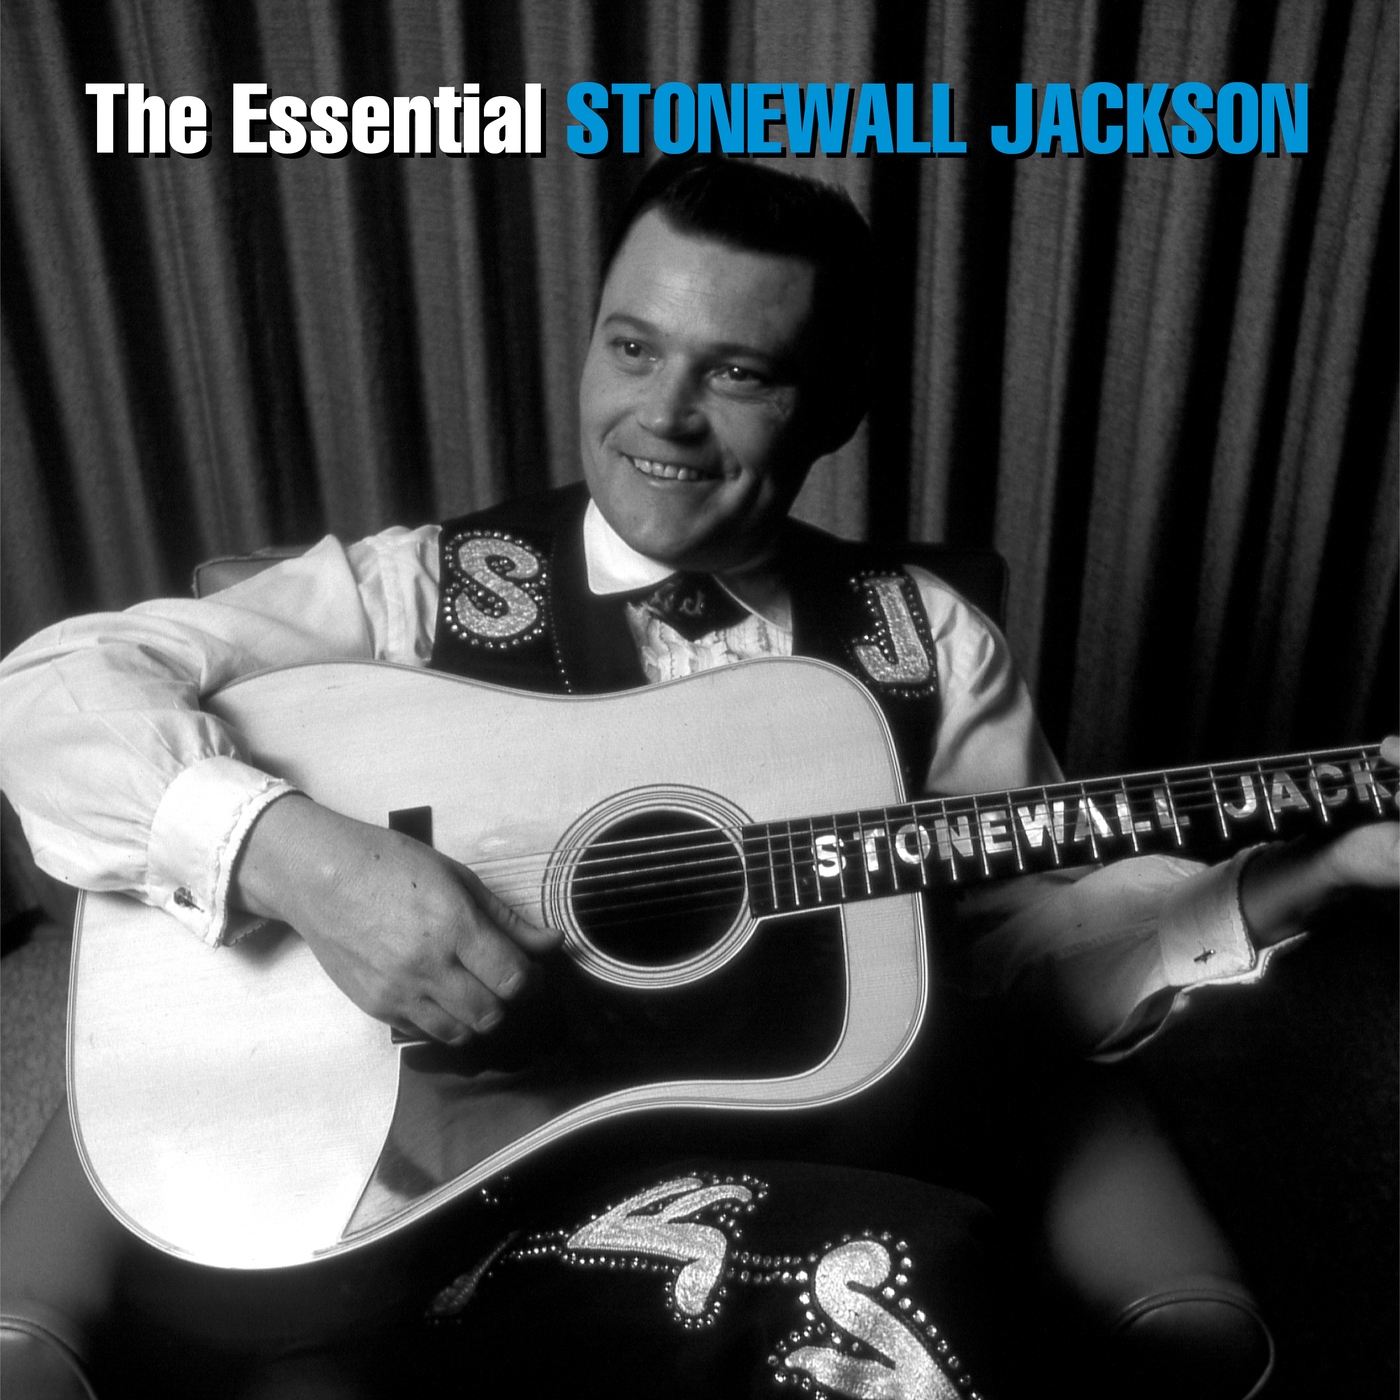 The Essential Stonewall Jackson - Stonewall Jackson